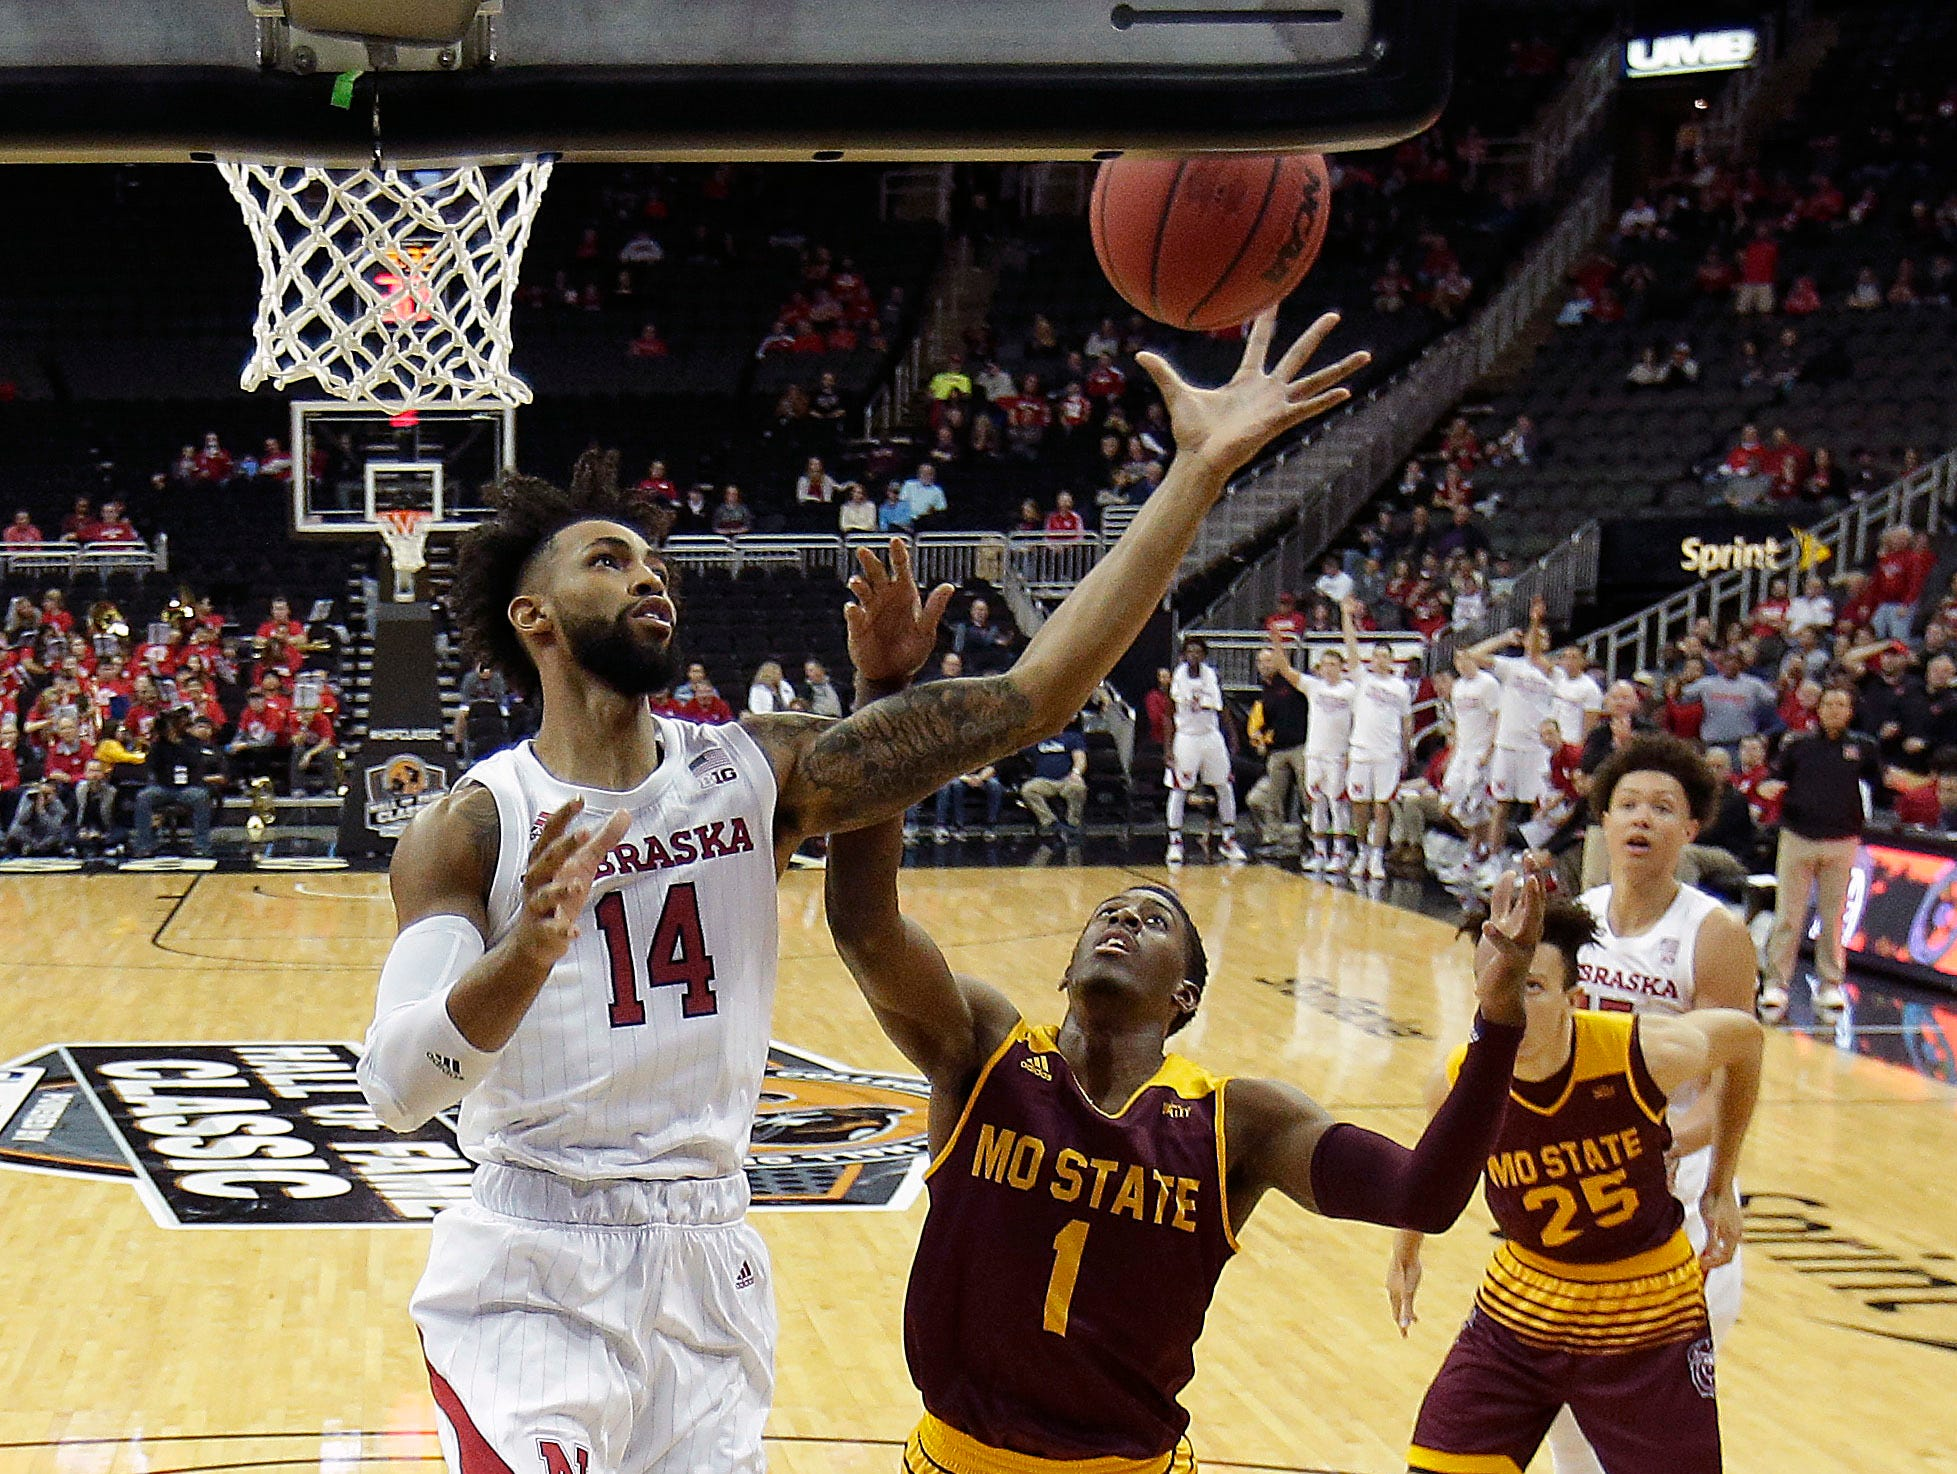 Nebraska's Isaac Copeland Jr. (14) gets past Missouri State's Keandre Cook (1) to put up a shot during the first half of an NCAA college basketball game Monday, Nov. 19, 2018, in Kansas City, Mo. (AP Photo/Charlie Riedel)